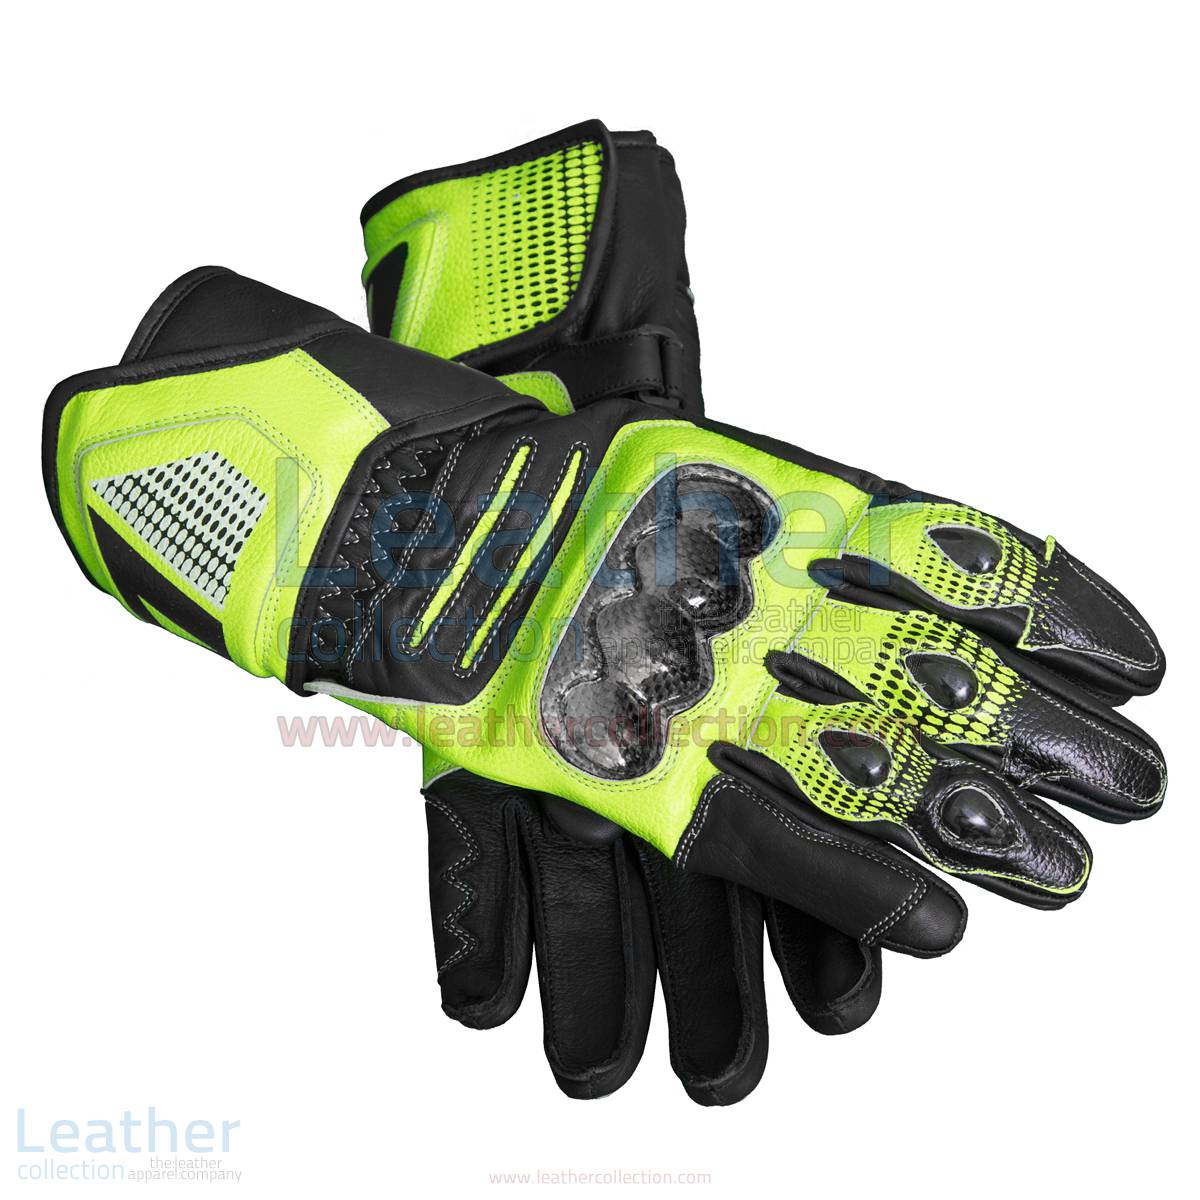 Valentino Rossi Motorcycle Race Gloves